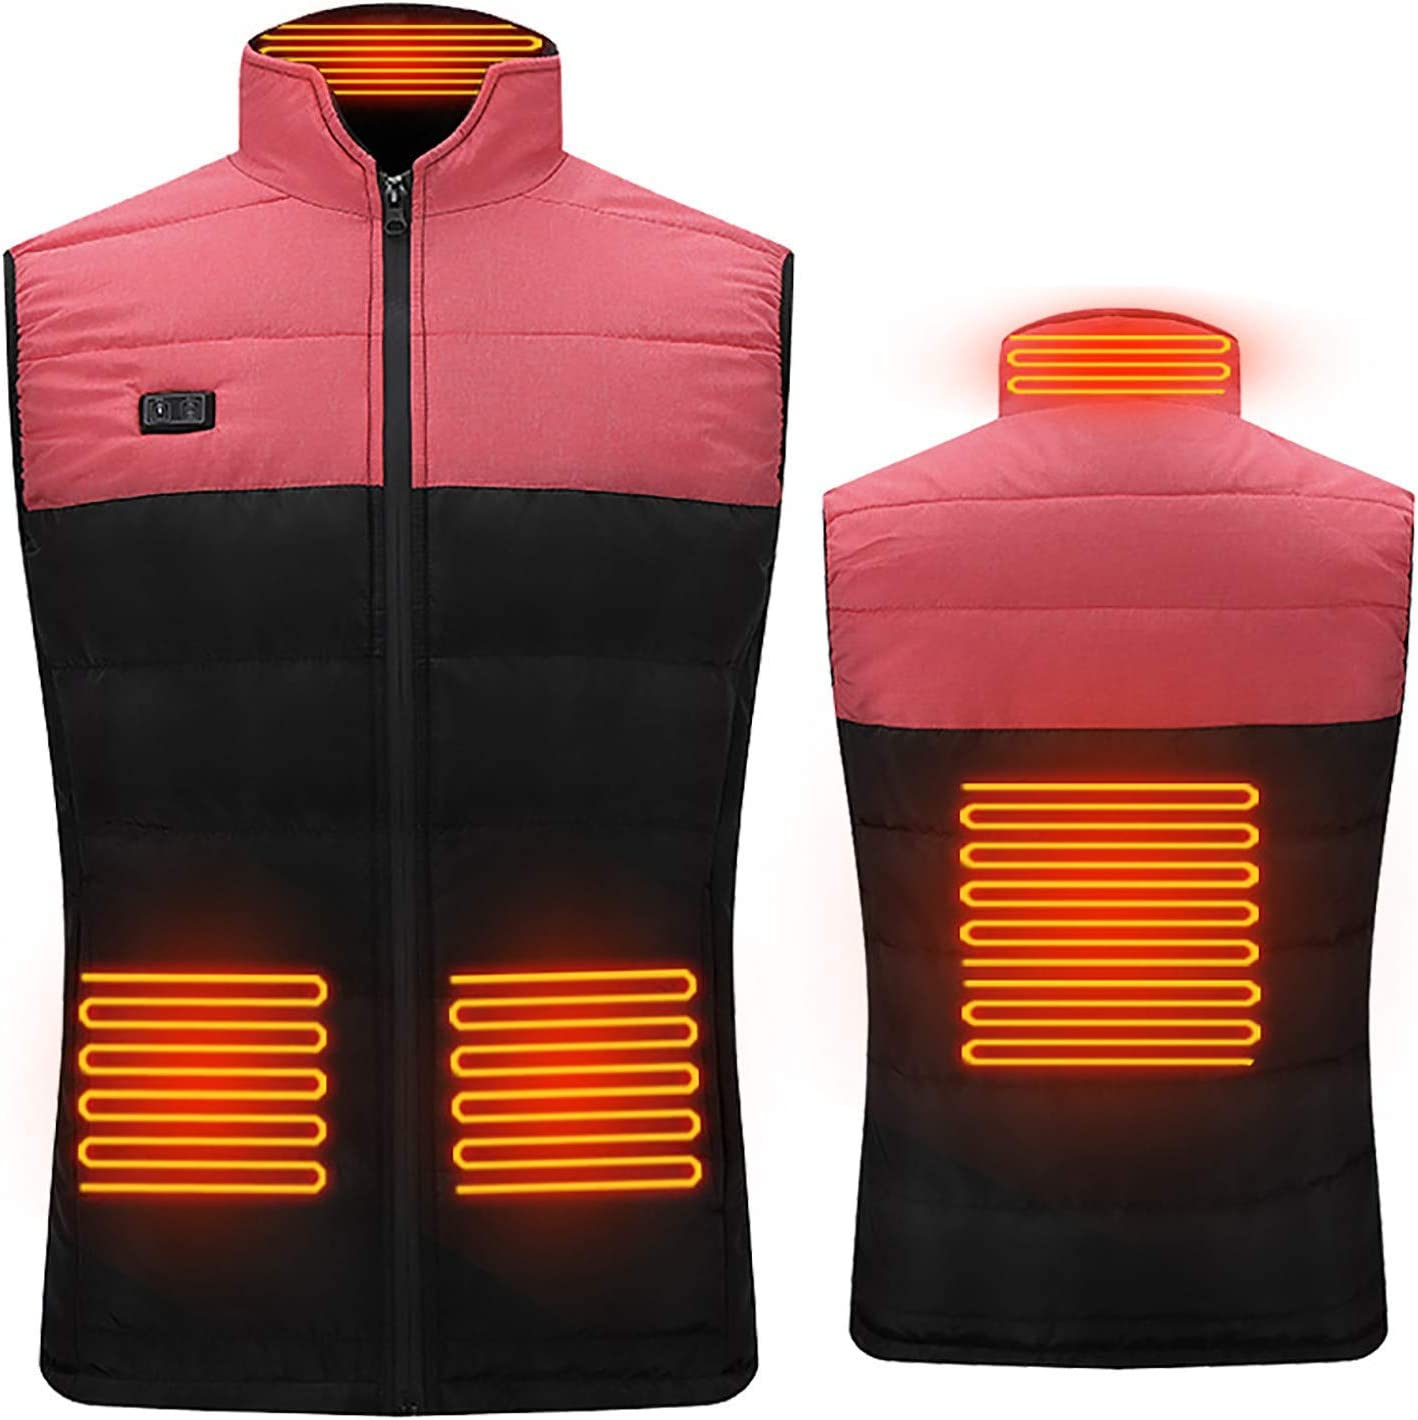 JACKET New Electric Heated Vest for Man//Woman,Double Switch Adjustable USB Heating Coat with 4 Heating Zones,3 Temperature Levels,for Hunting Outdoor Camping,Black,s